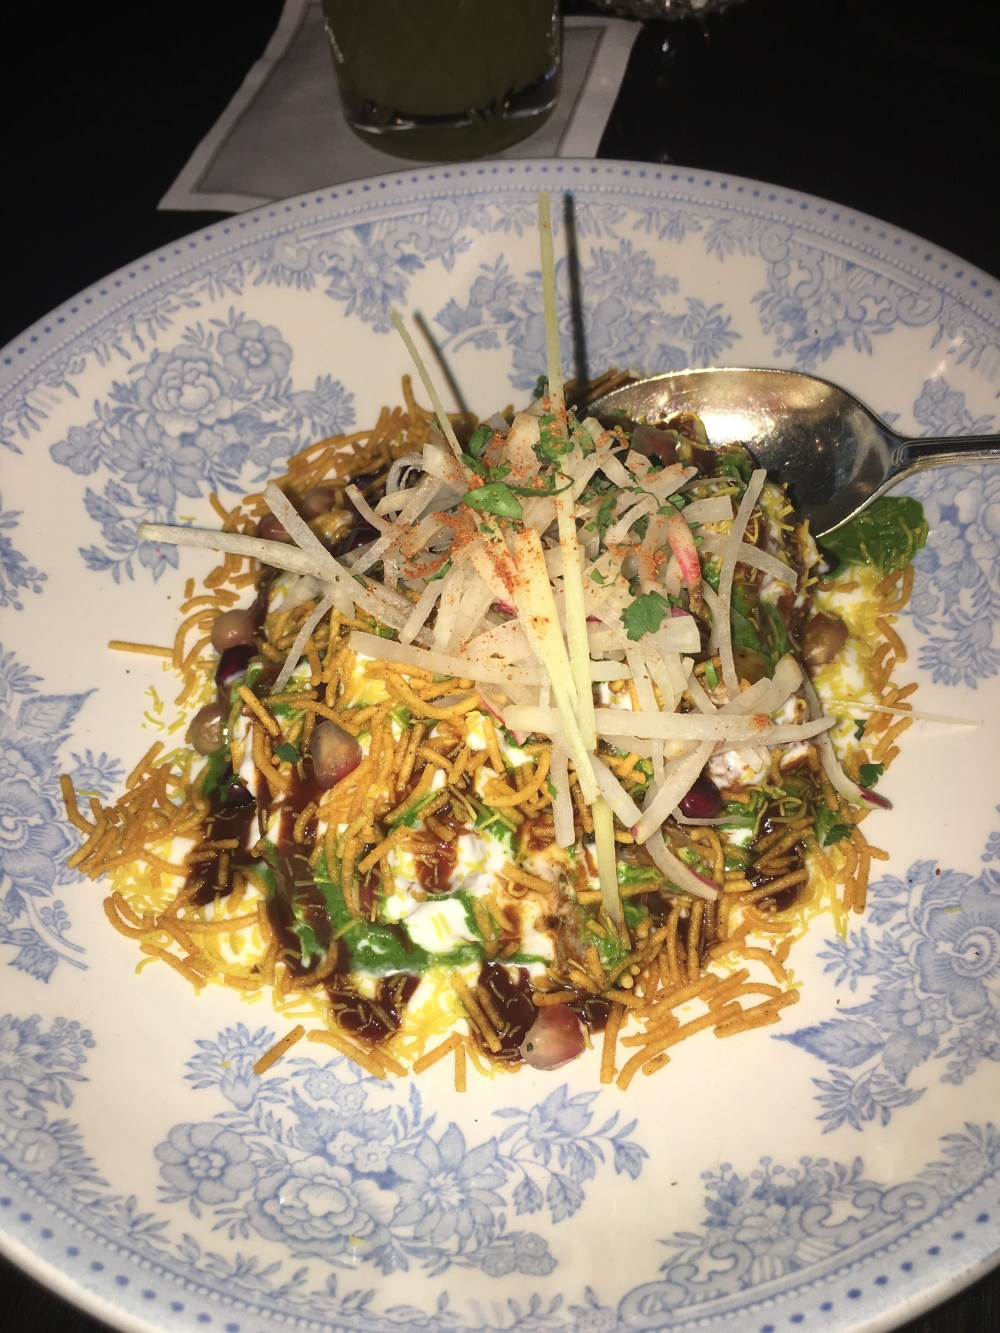 LondonsDiningCouple Gymkhana Restaurant Review | Top 10 Dishes in London